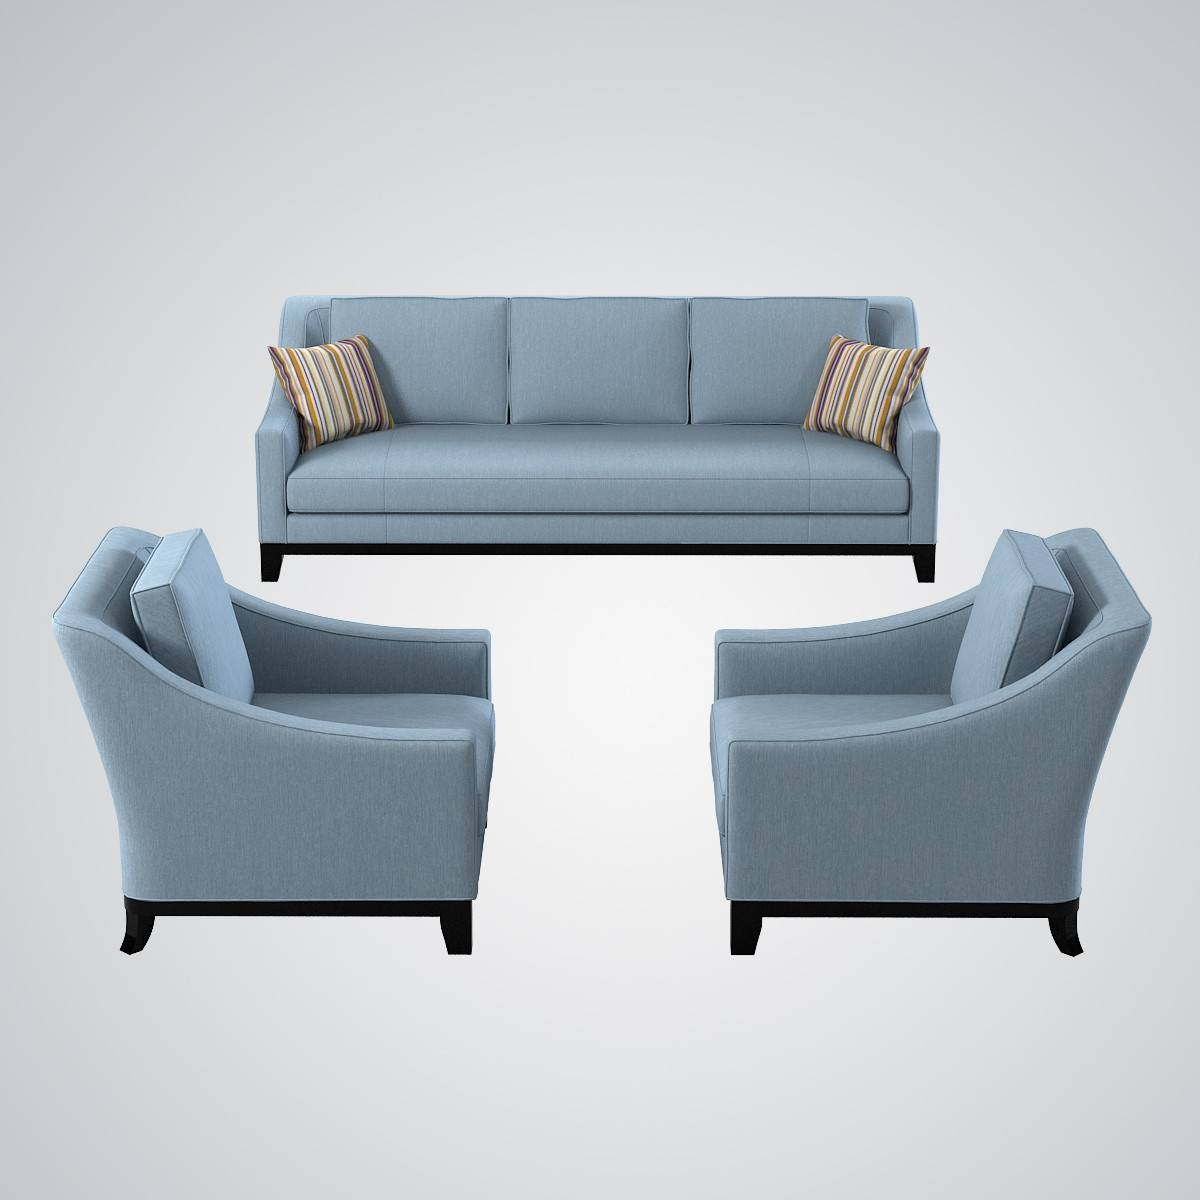 Sofa 3D Models | Turbosquid throughout Chair Sofas (Image 16 of 30)